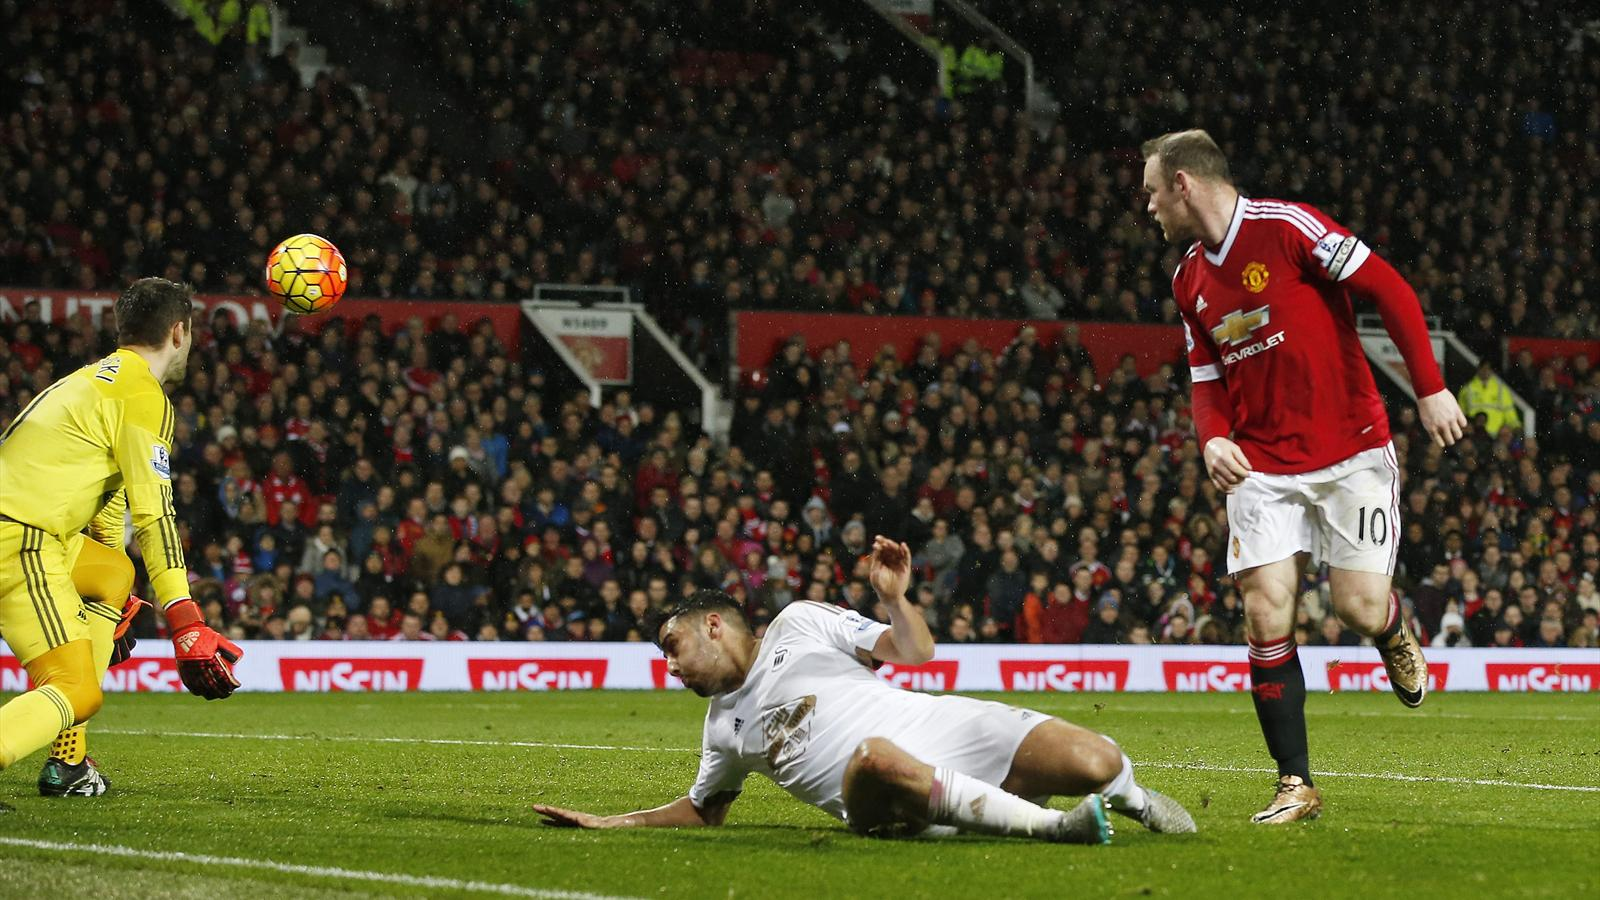 Manchester United's Wayne Rooney flicks the ball into the Swansea net